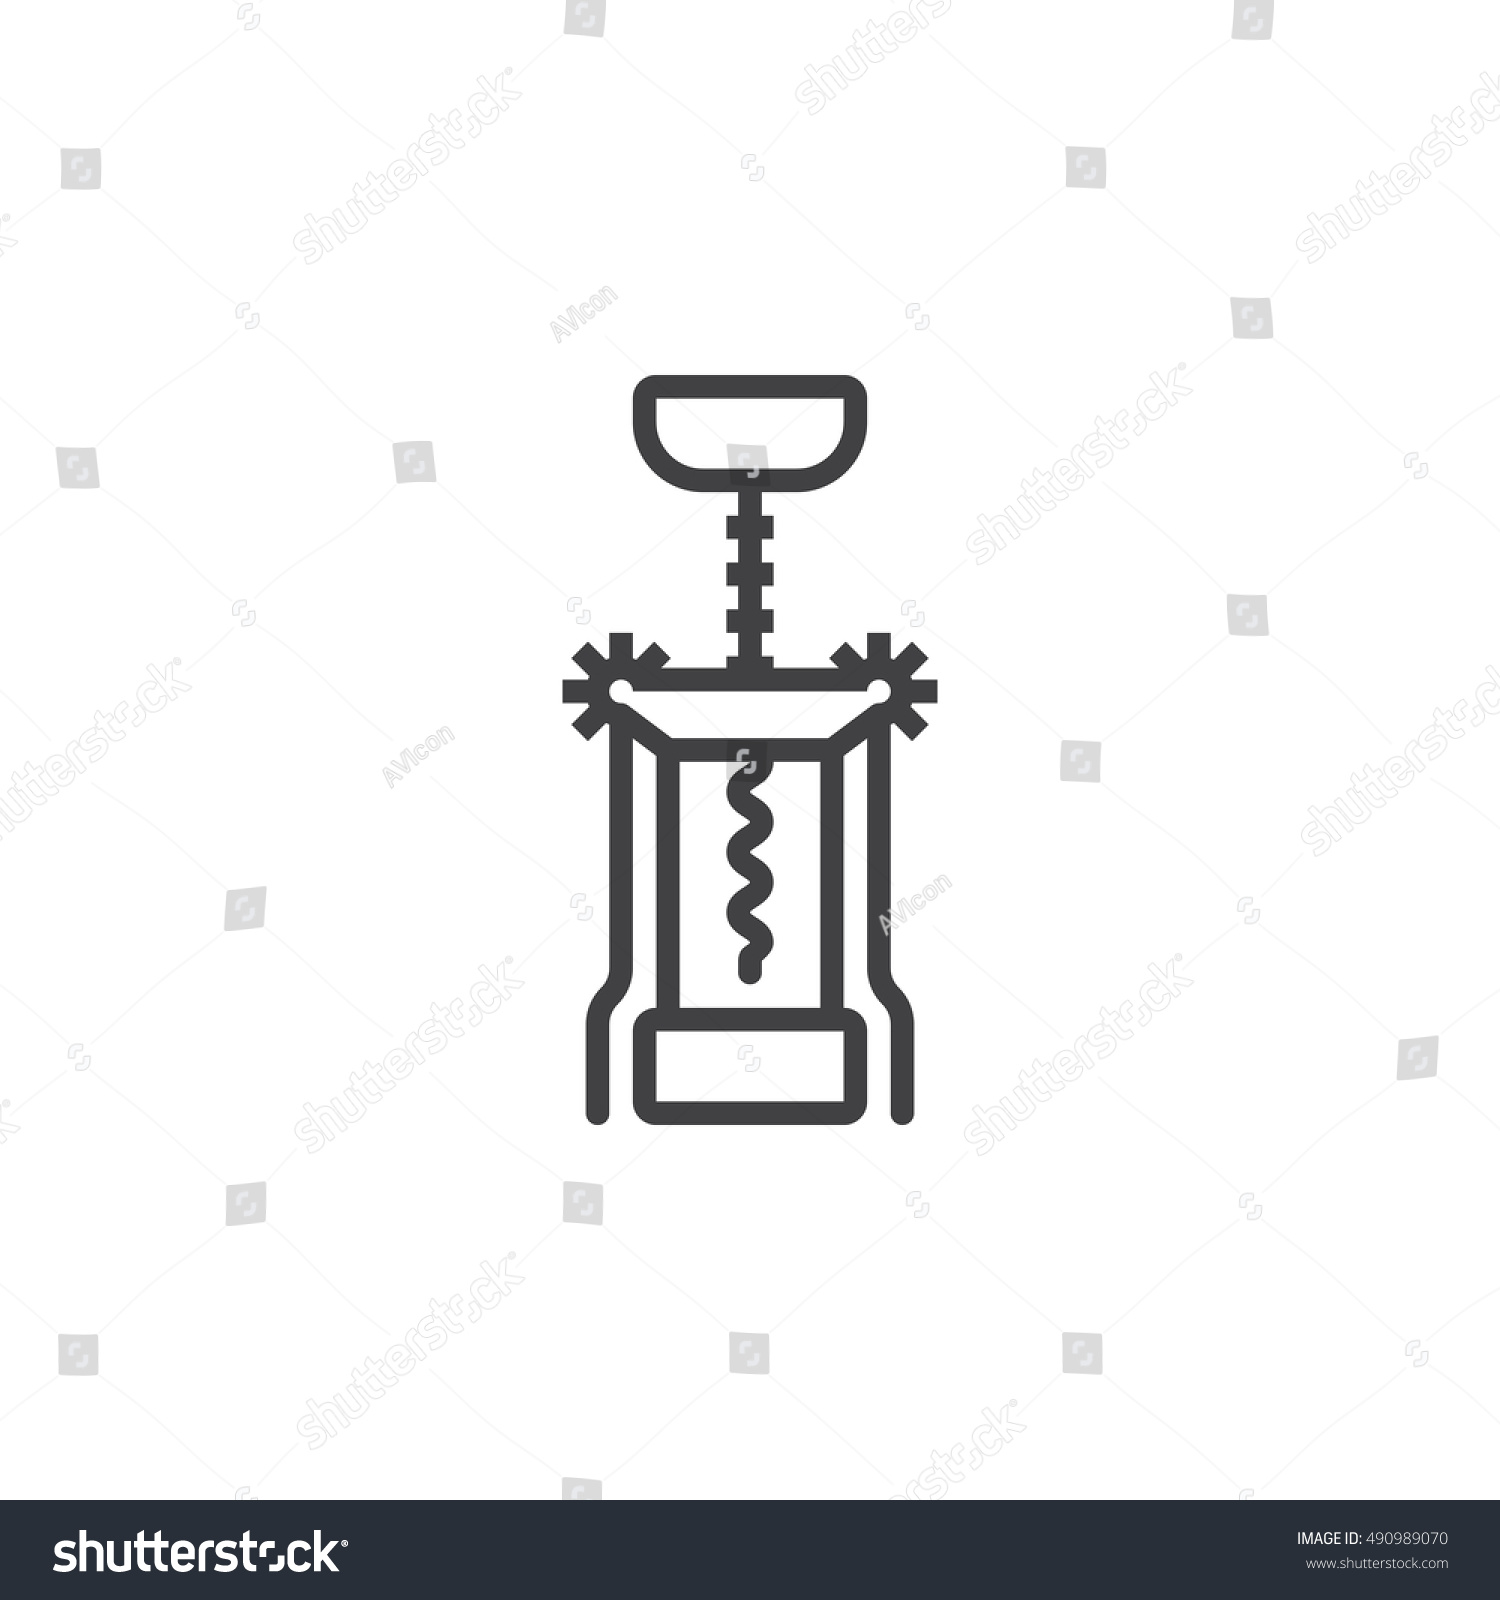 corkscrew line icon, bottle opener outline vector sign, linear pictogram  isolated on white  logo illustration